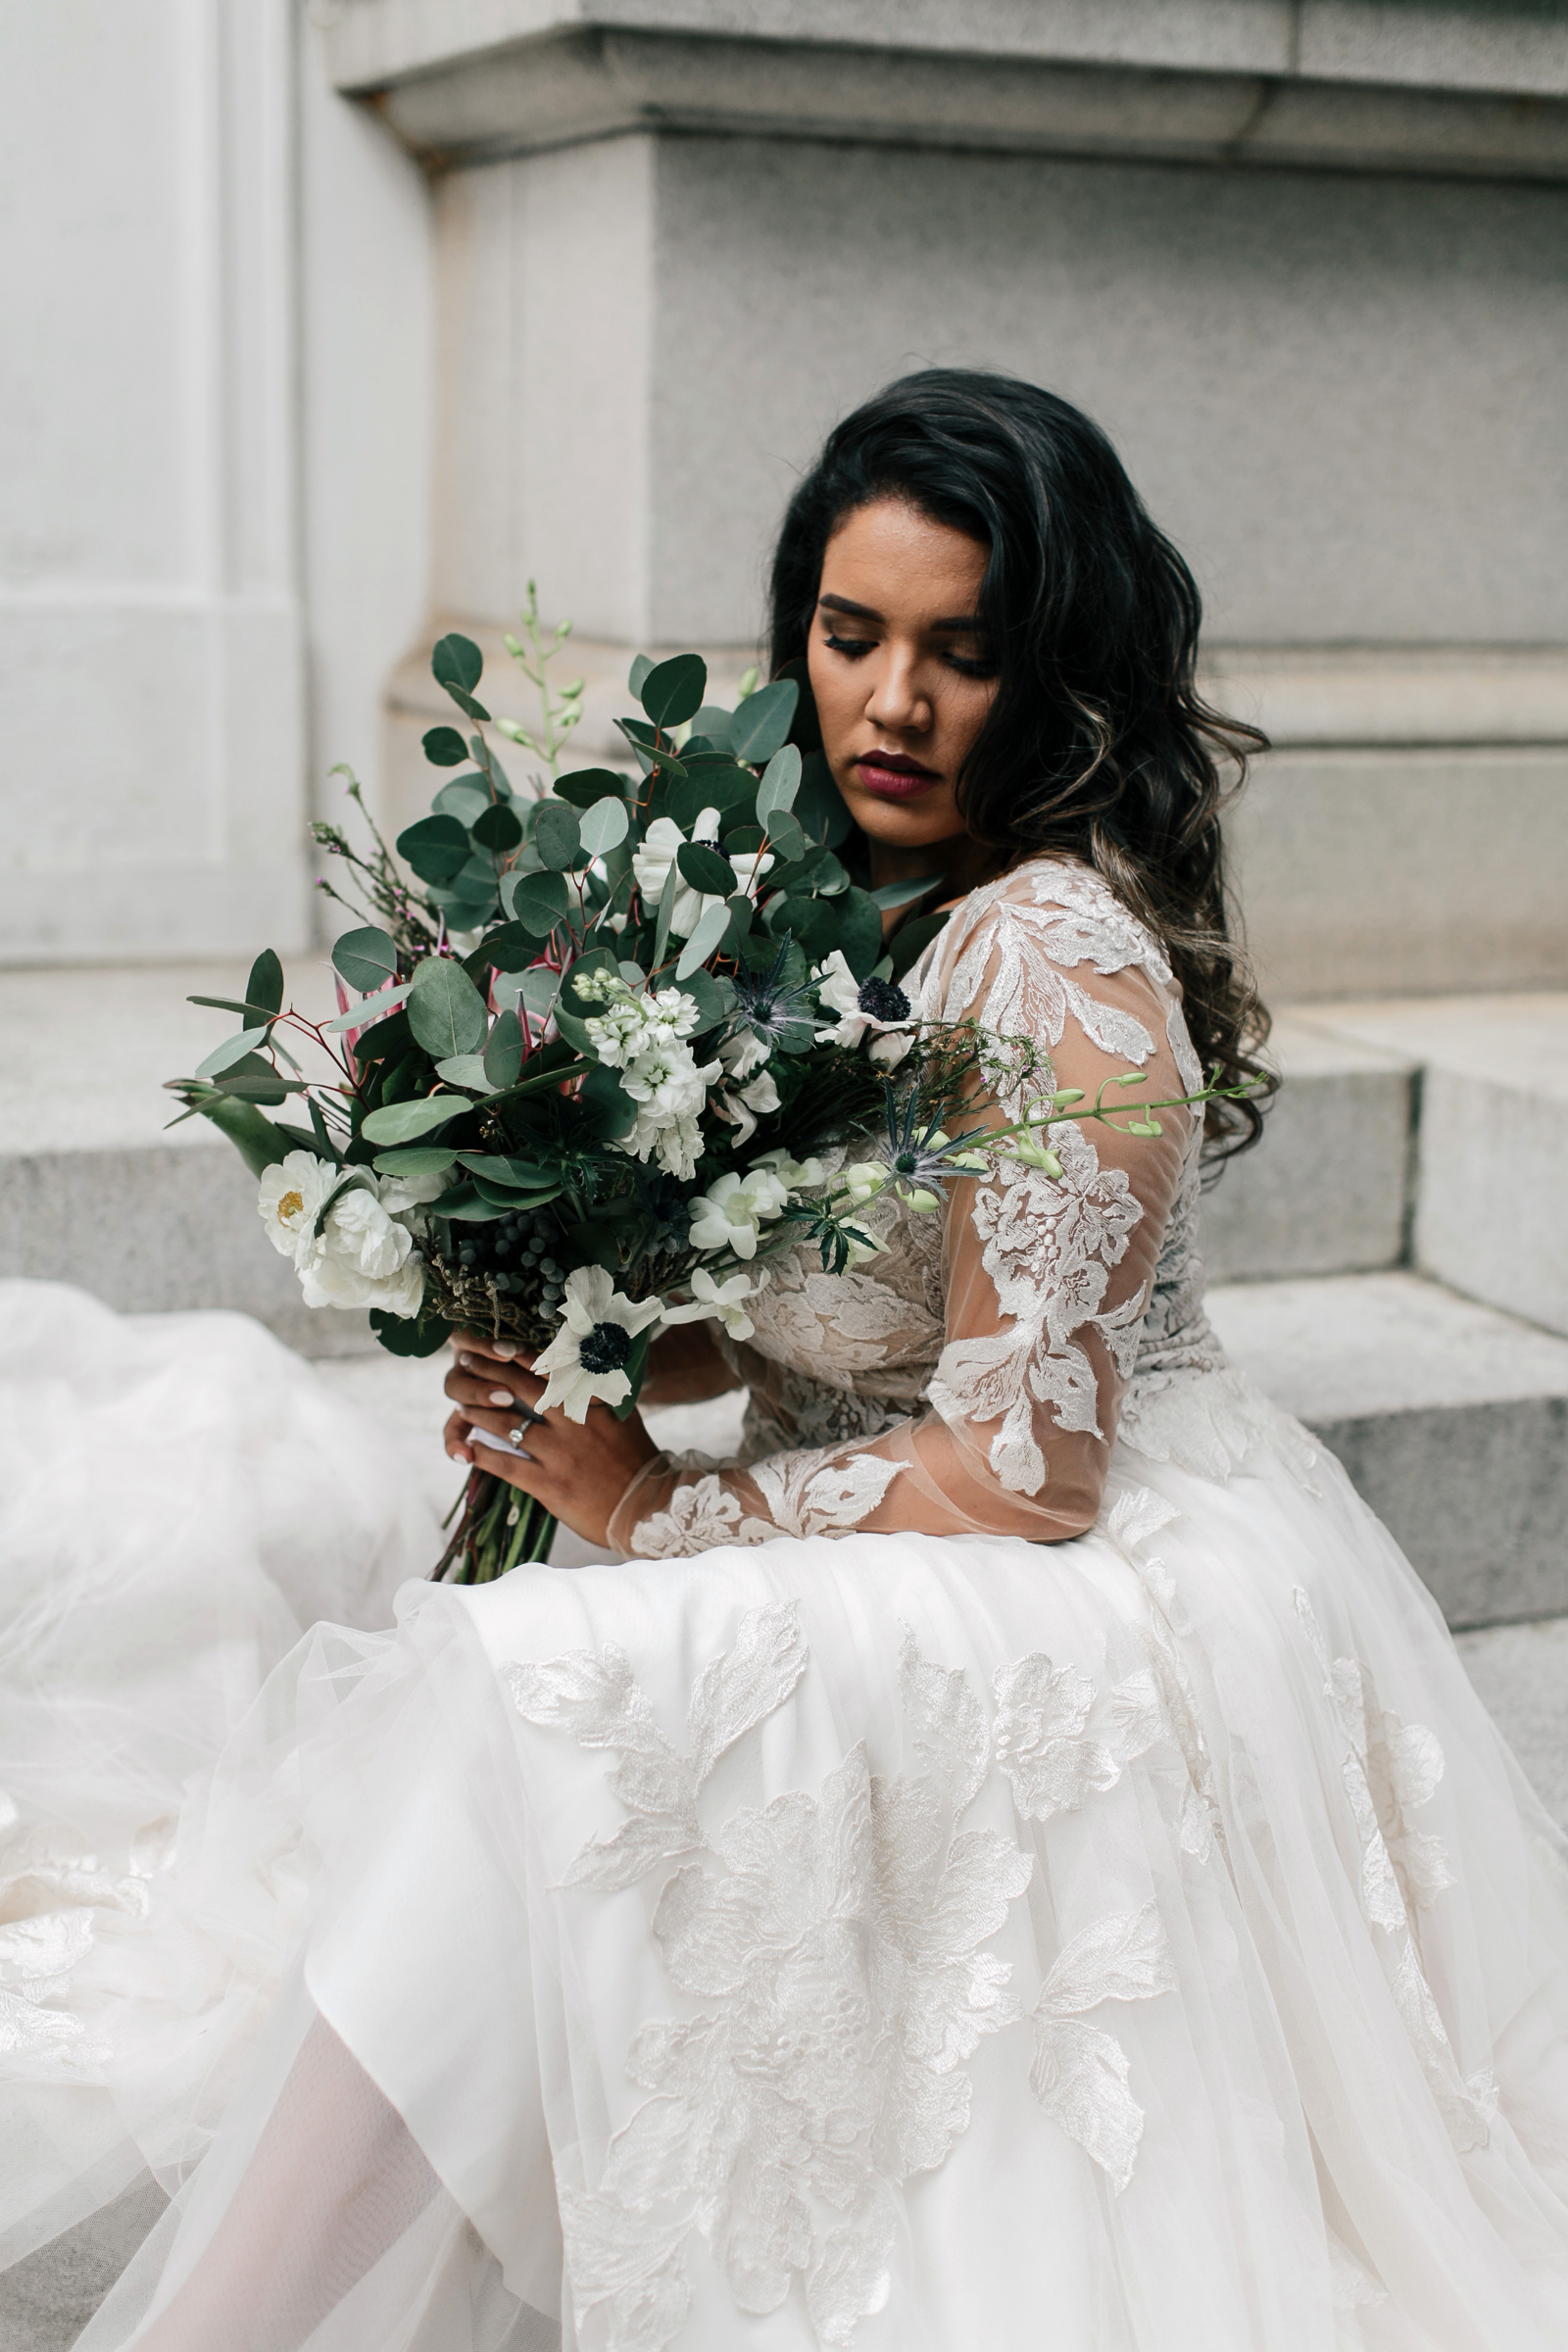 Bridal-Raleigh-Downtown-Styled-Shoot-5.jpg